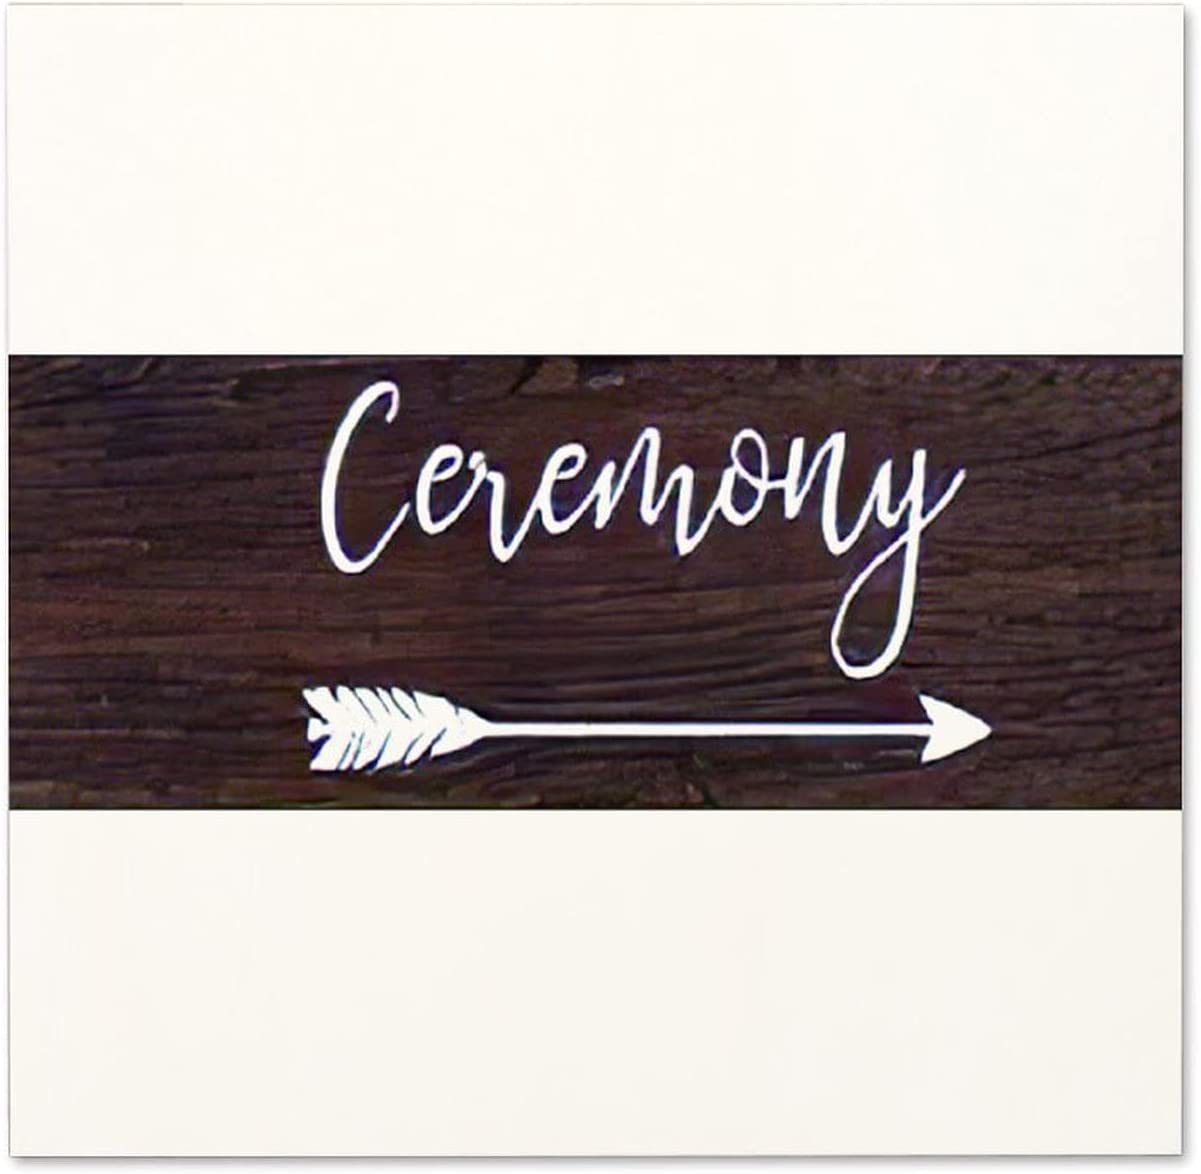 NOT BRANDED Ceremony Rustic Wood Wedding Arrow Wood Sign Inspirational Wall Art , Rustic Saying Signs, Home Decor, for Bedroom Living Room Office 12×12×0.2 inches